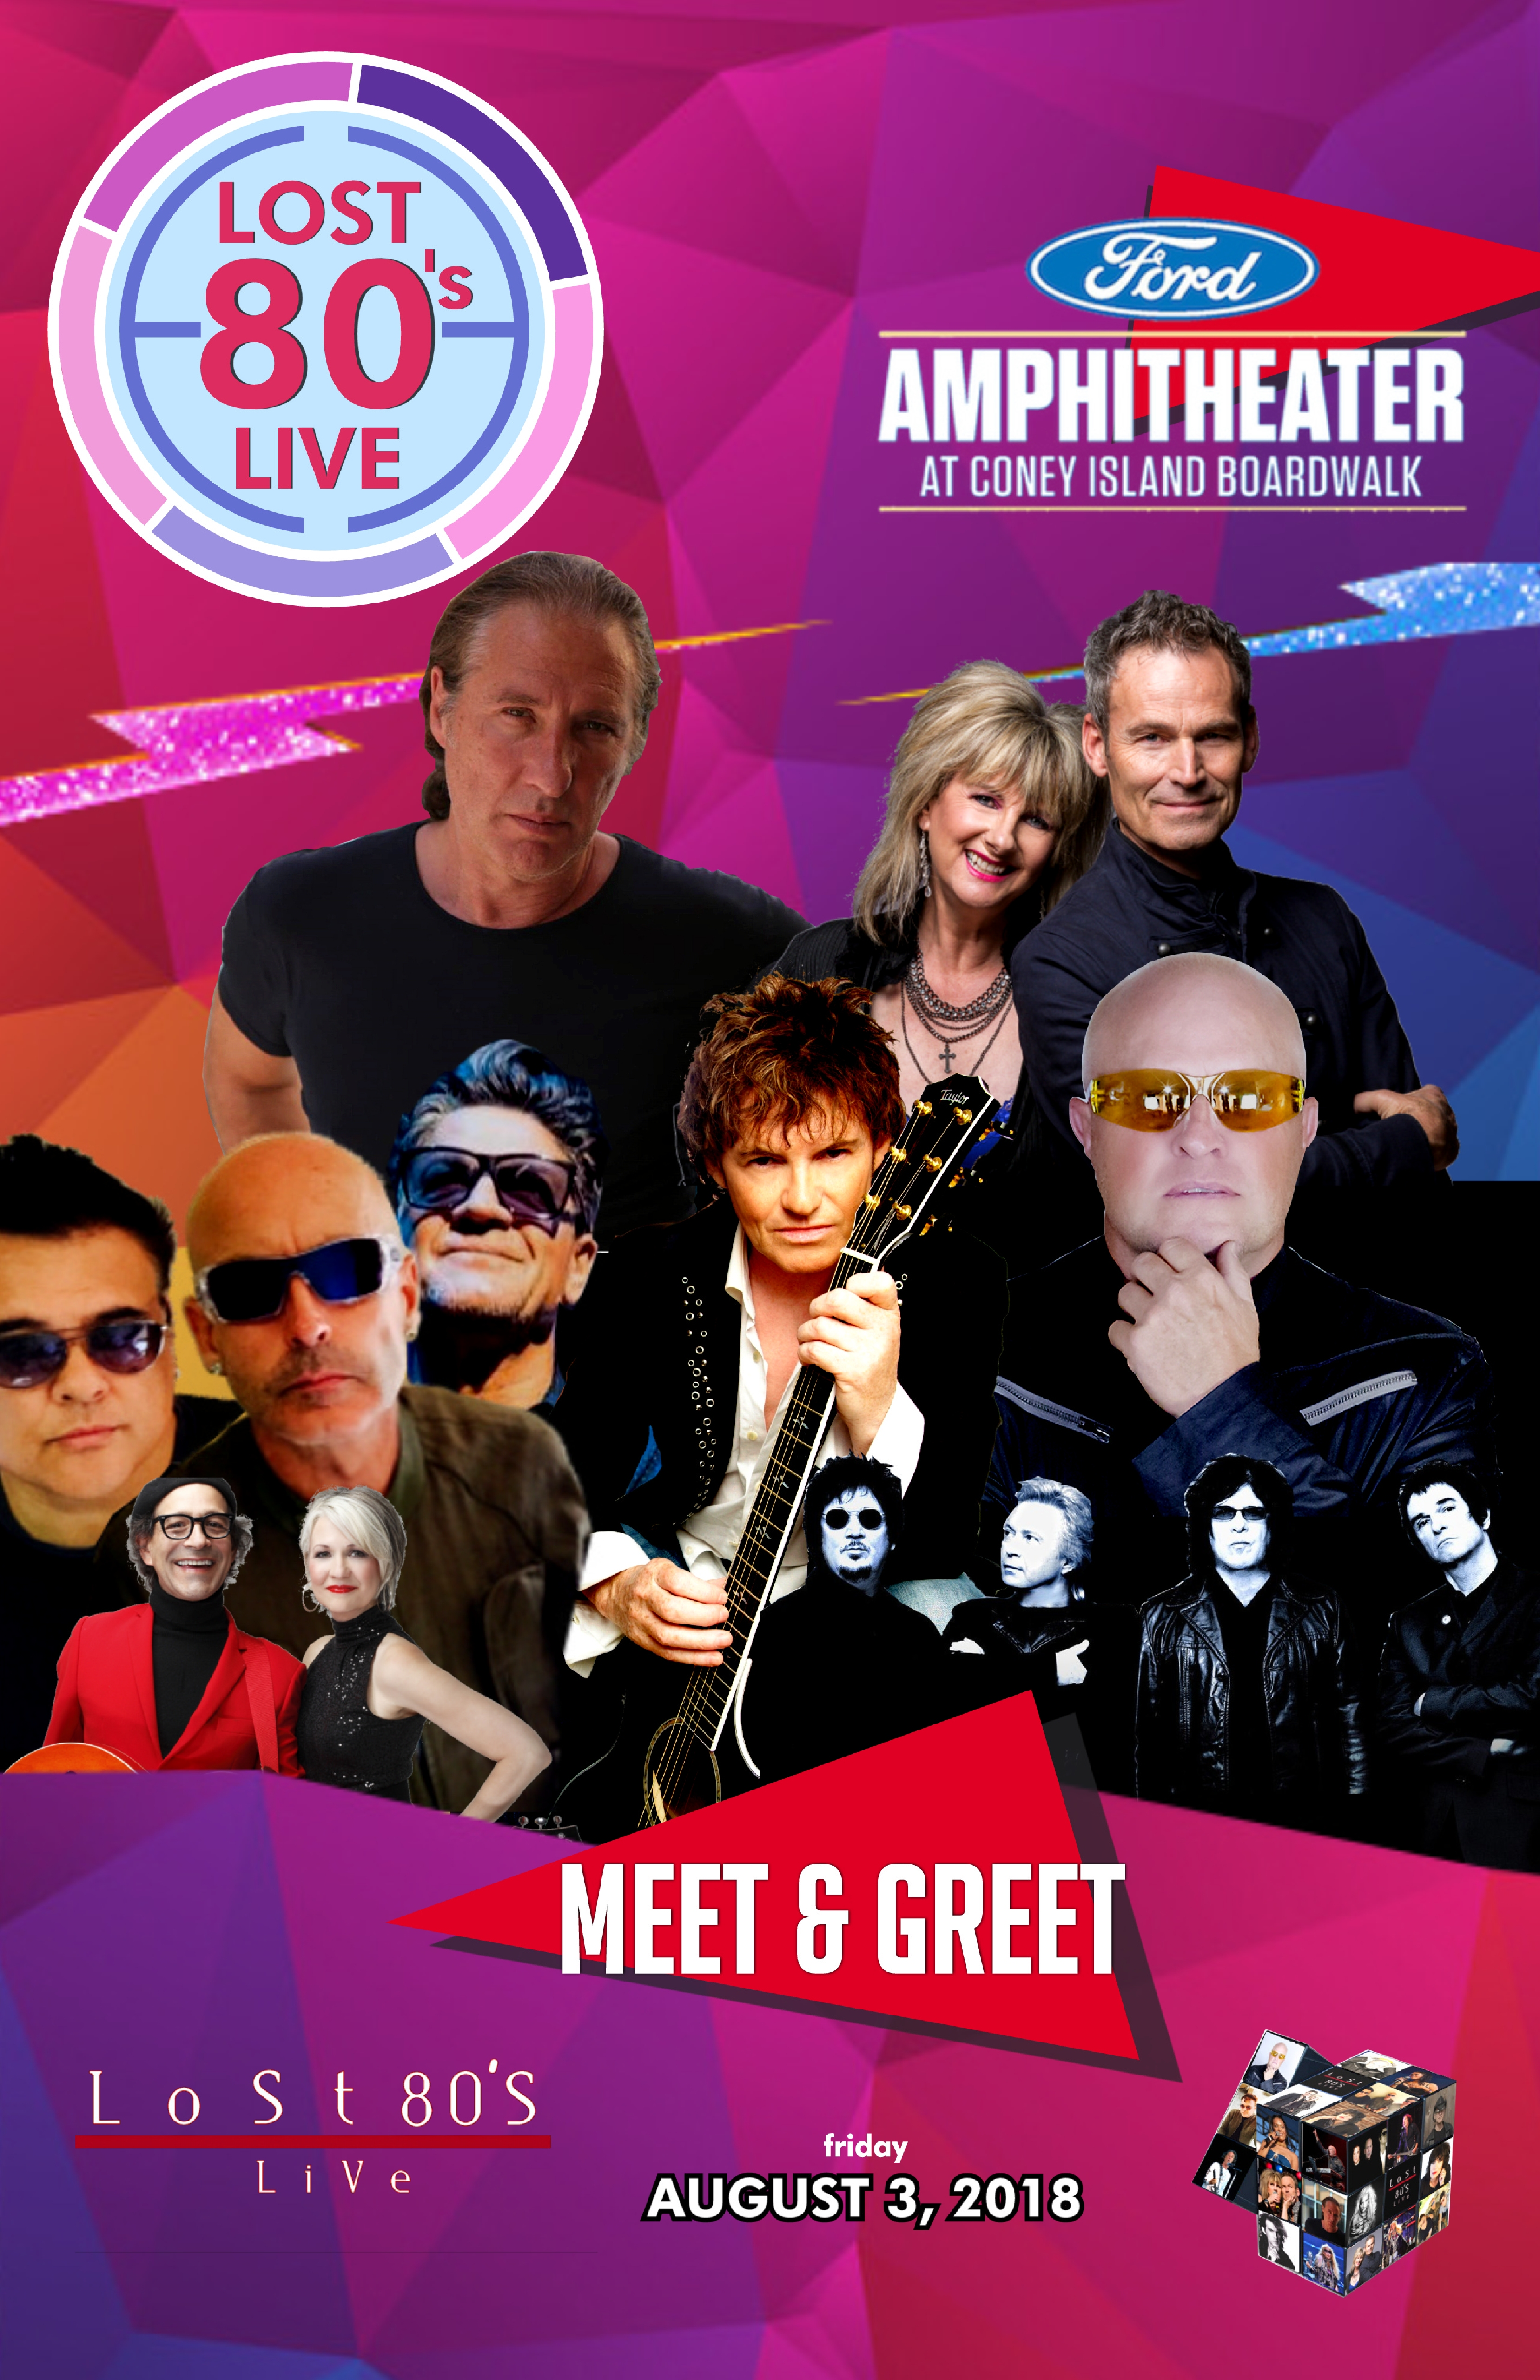 Meet and greet lost 80s ford amphitheater ny for the ultimate 80s meet and greet lost 80s ford amphitheater ny for the ultimate 80s fan experience aug 03 show ticket and meet and greet m4hsunfo